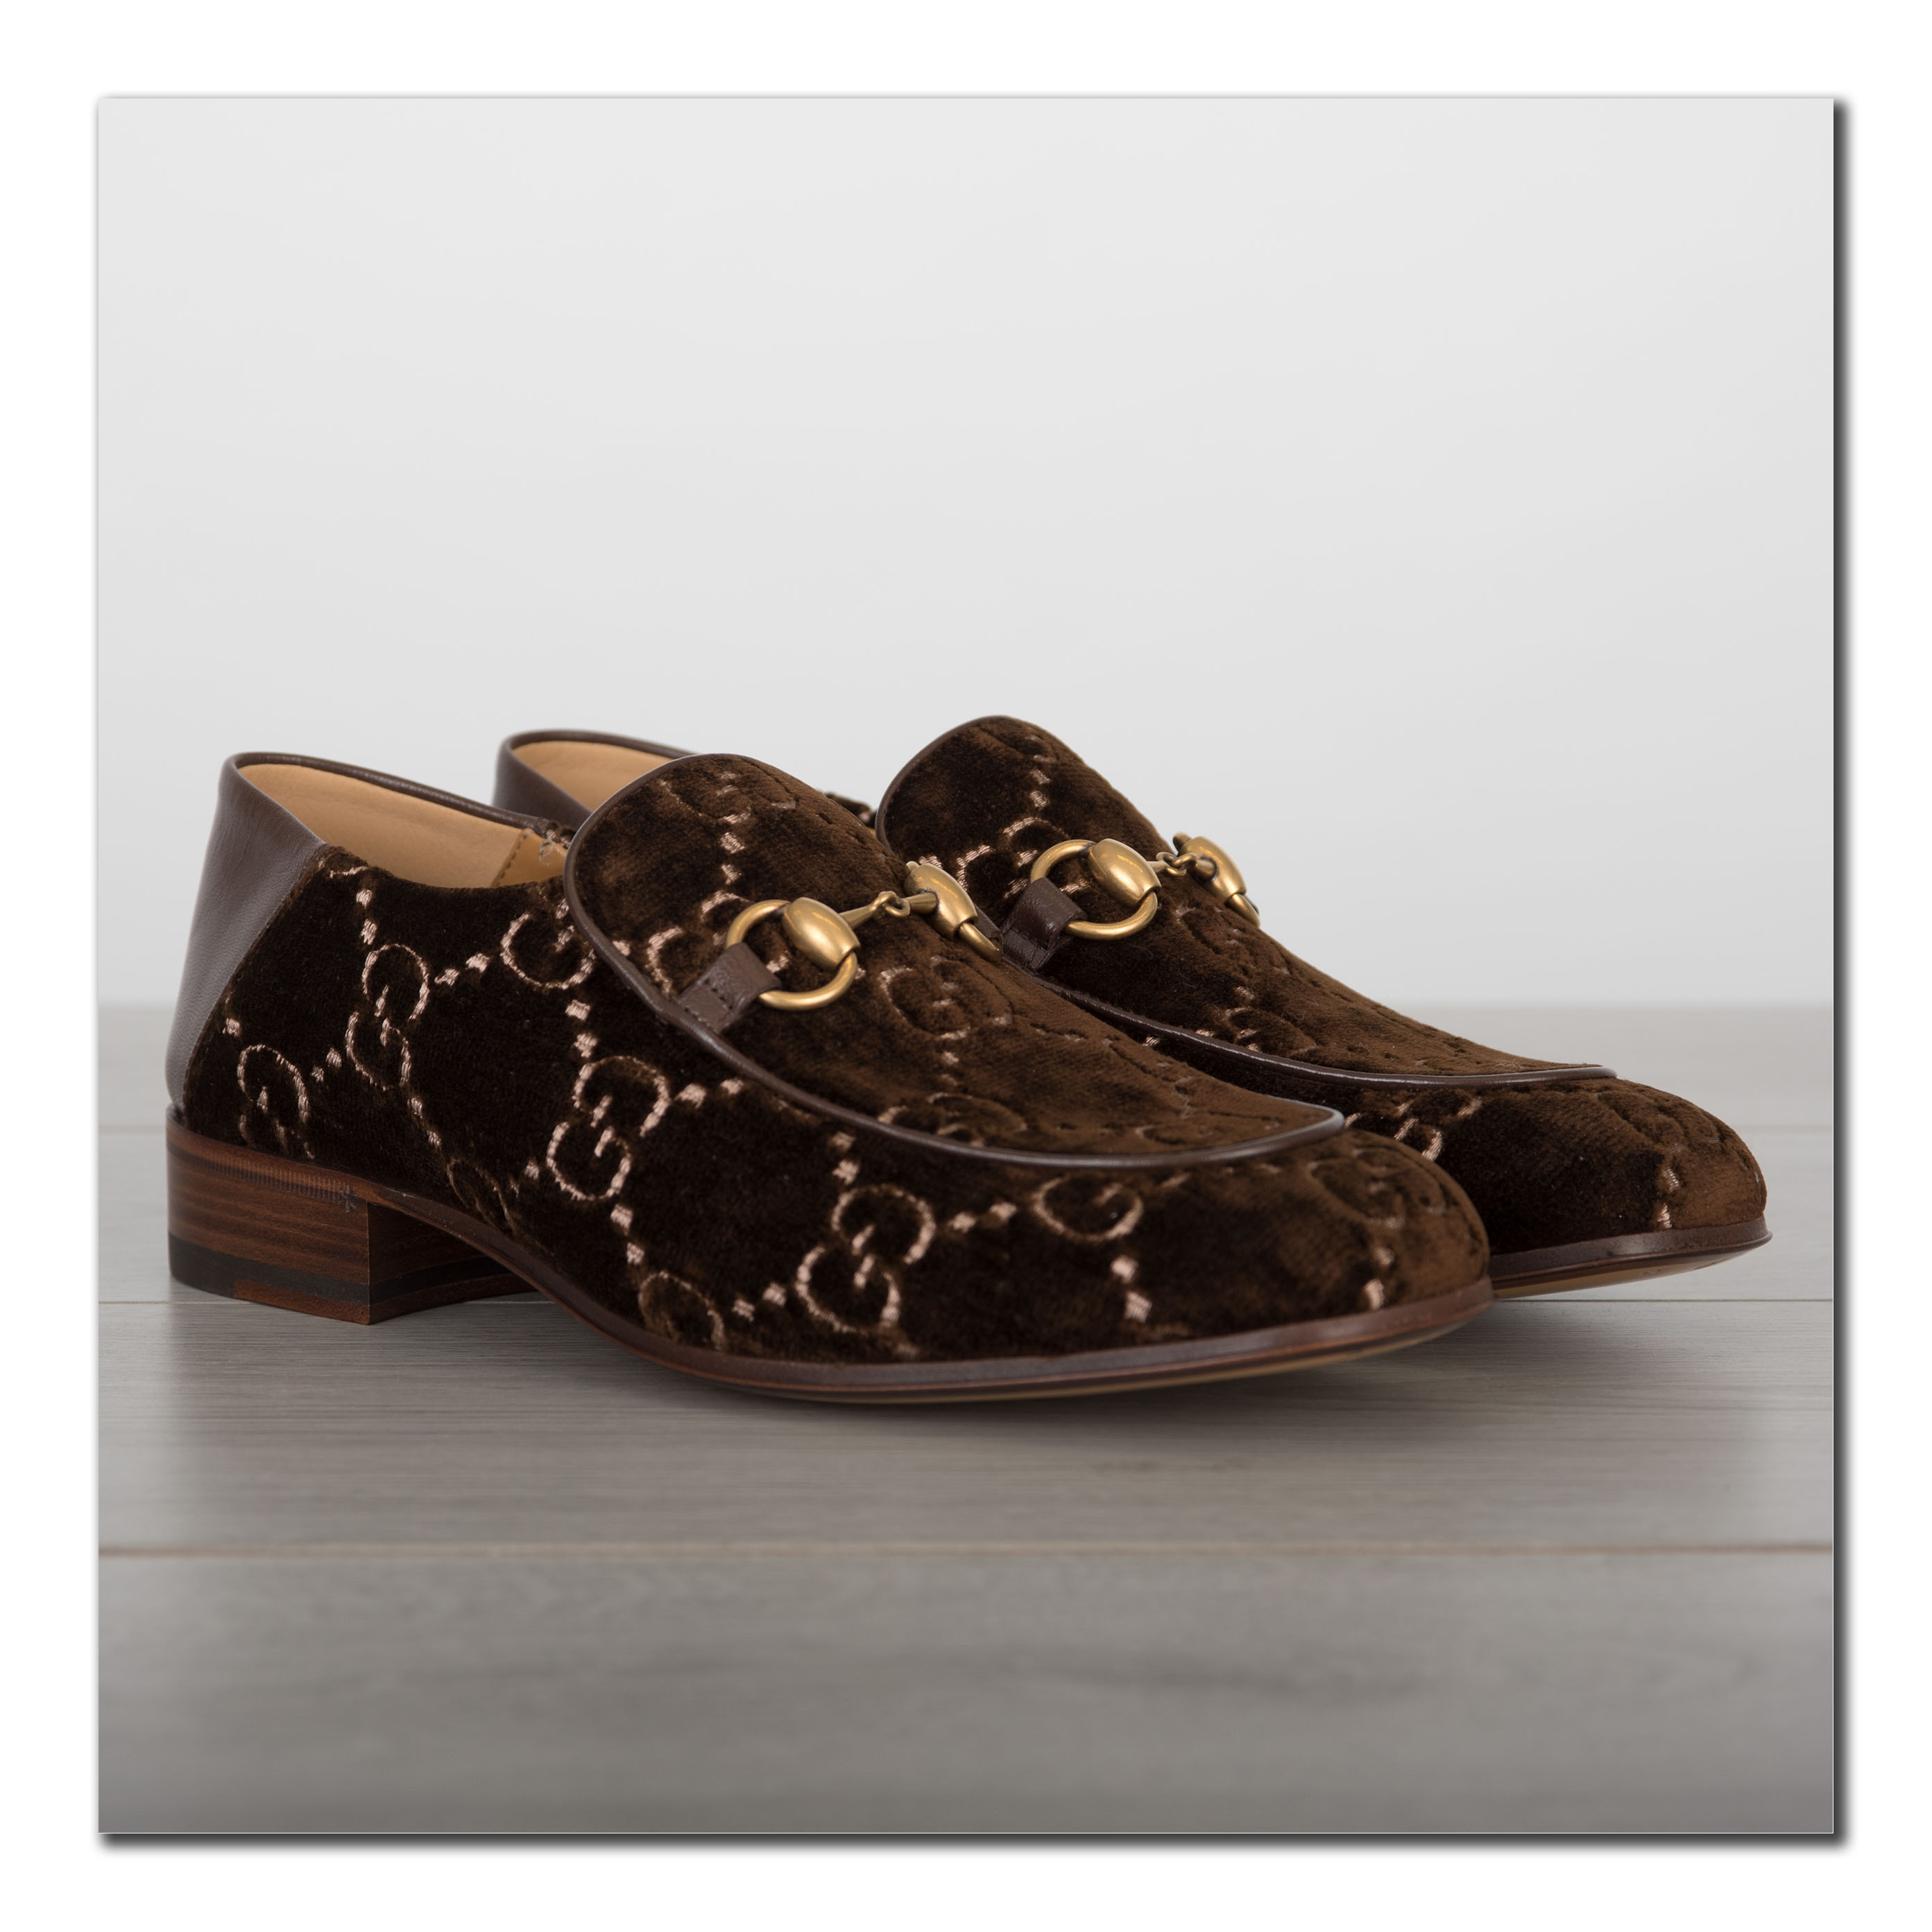 74311f71209 Details about GUCCI 850  Authentic New Horsebit Loafers In GG Brown Velvet With  Foldable Heels